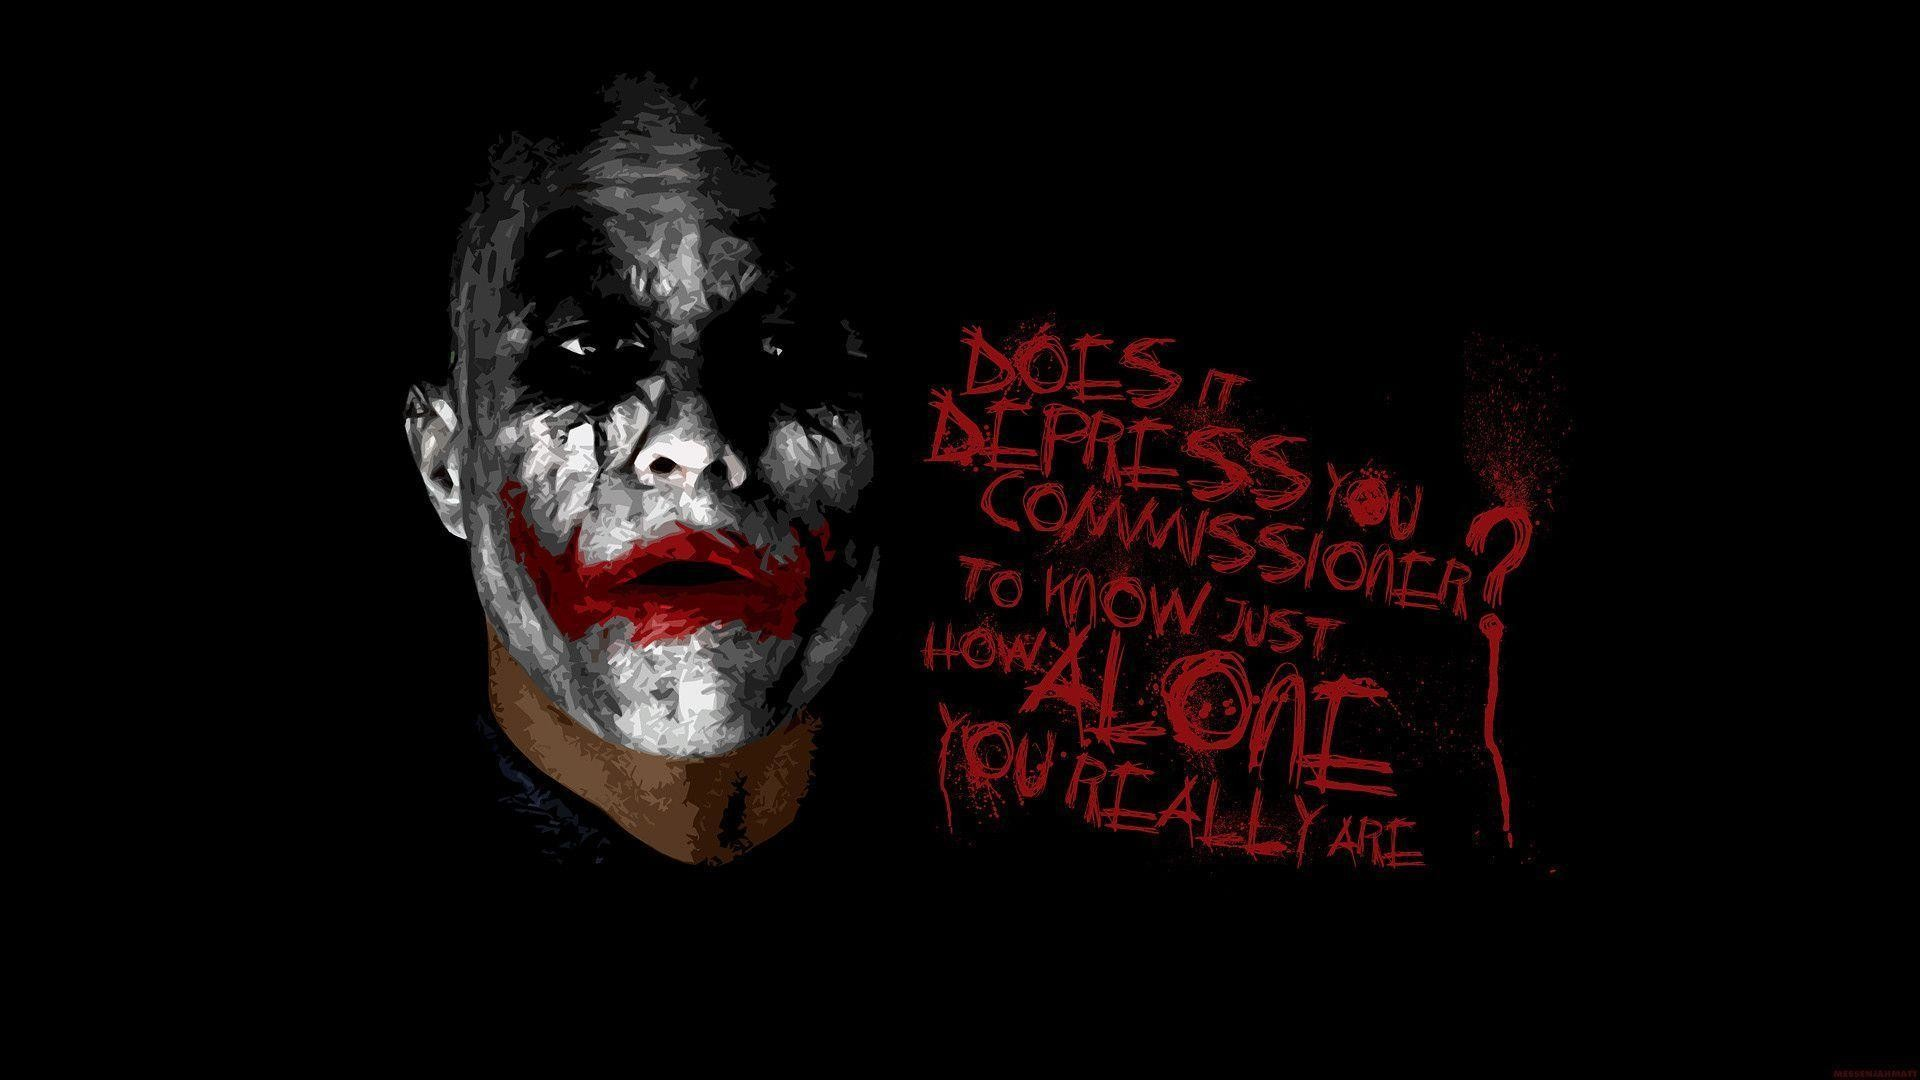 Joker Quotes Wallpapers (4+ pictures)